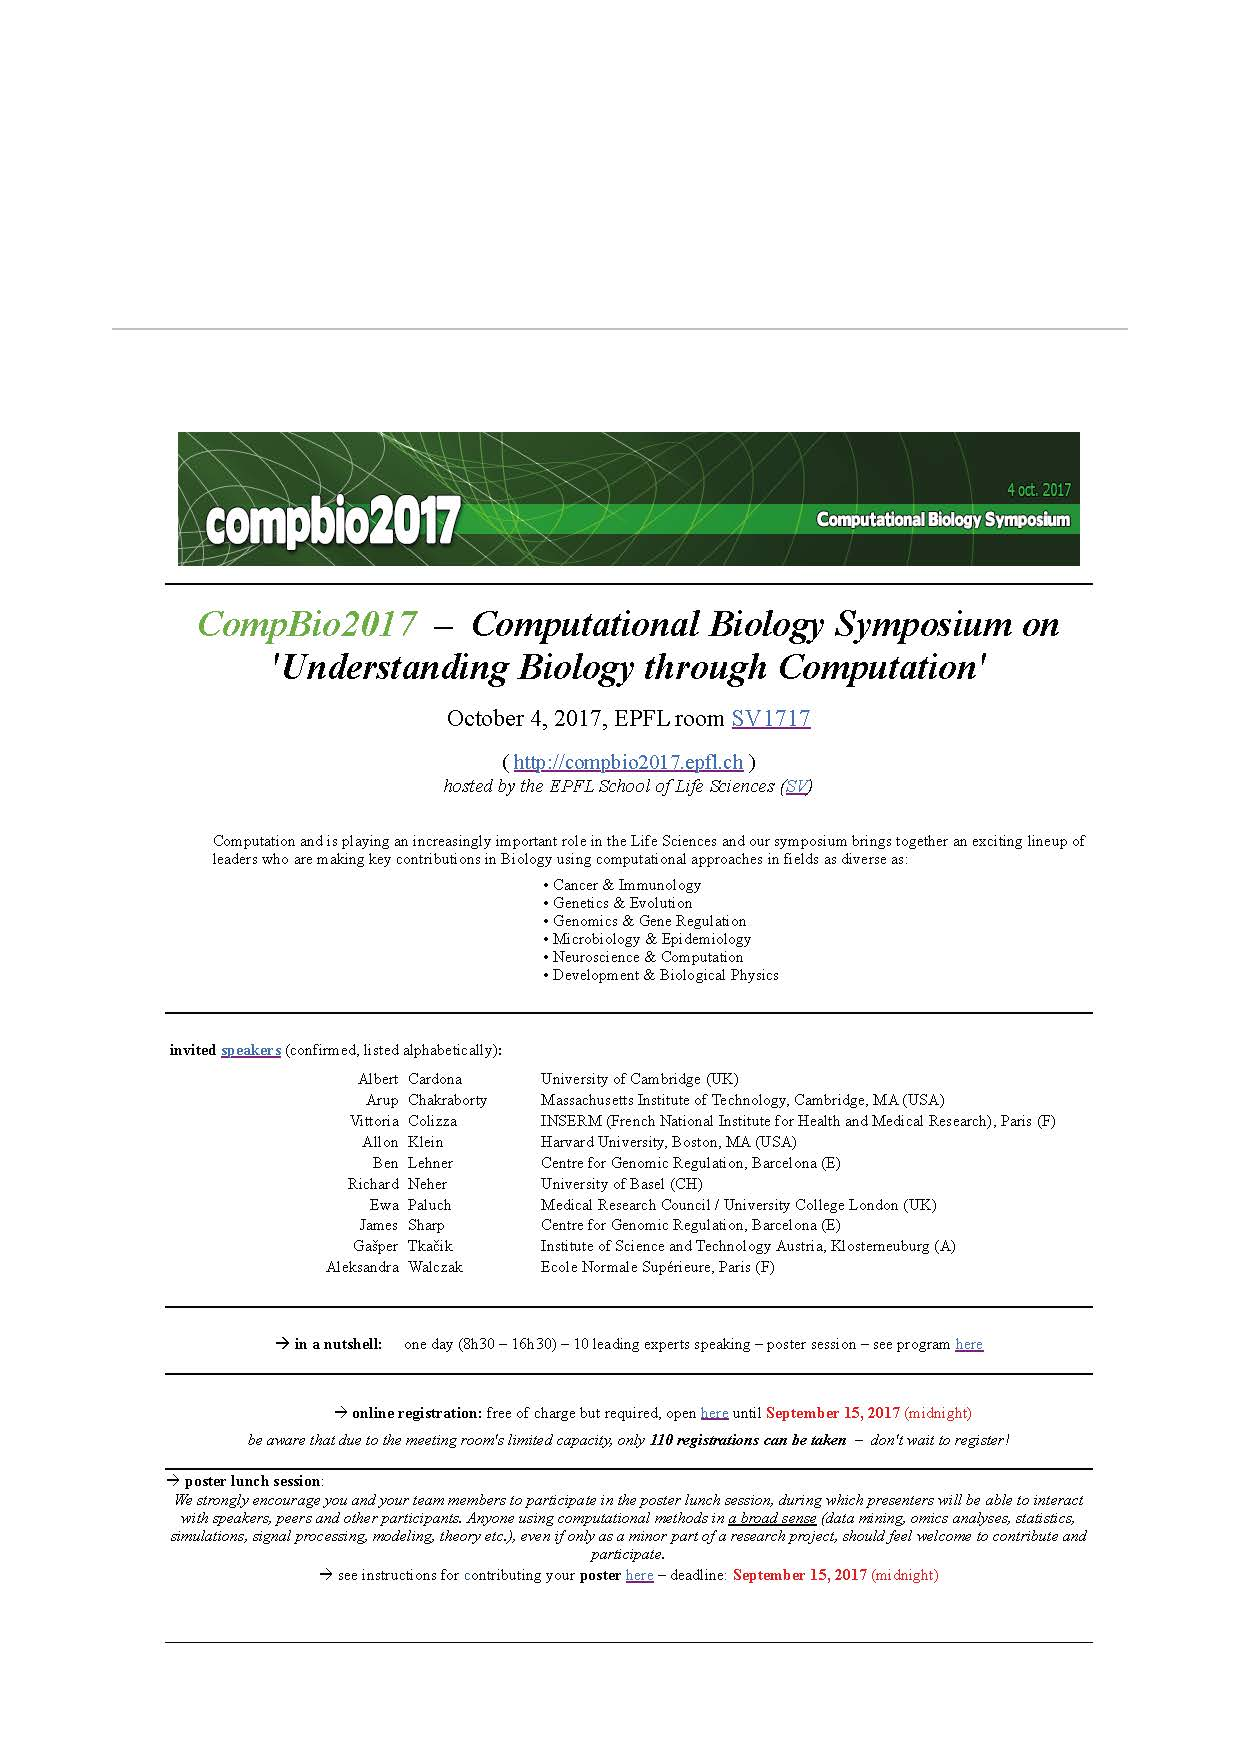 CompBio2017 Computational Biology Symposium